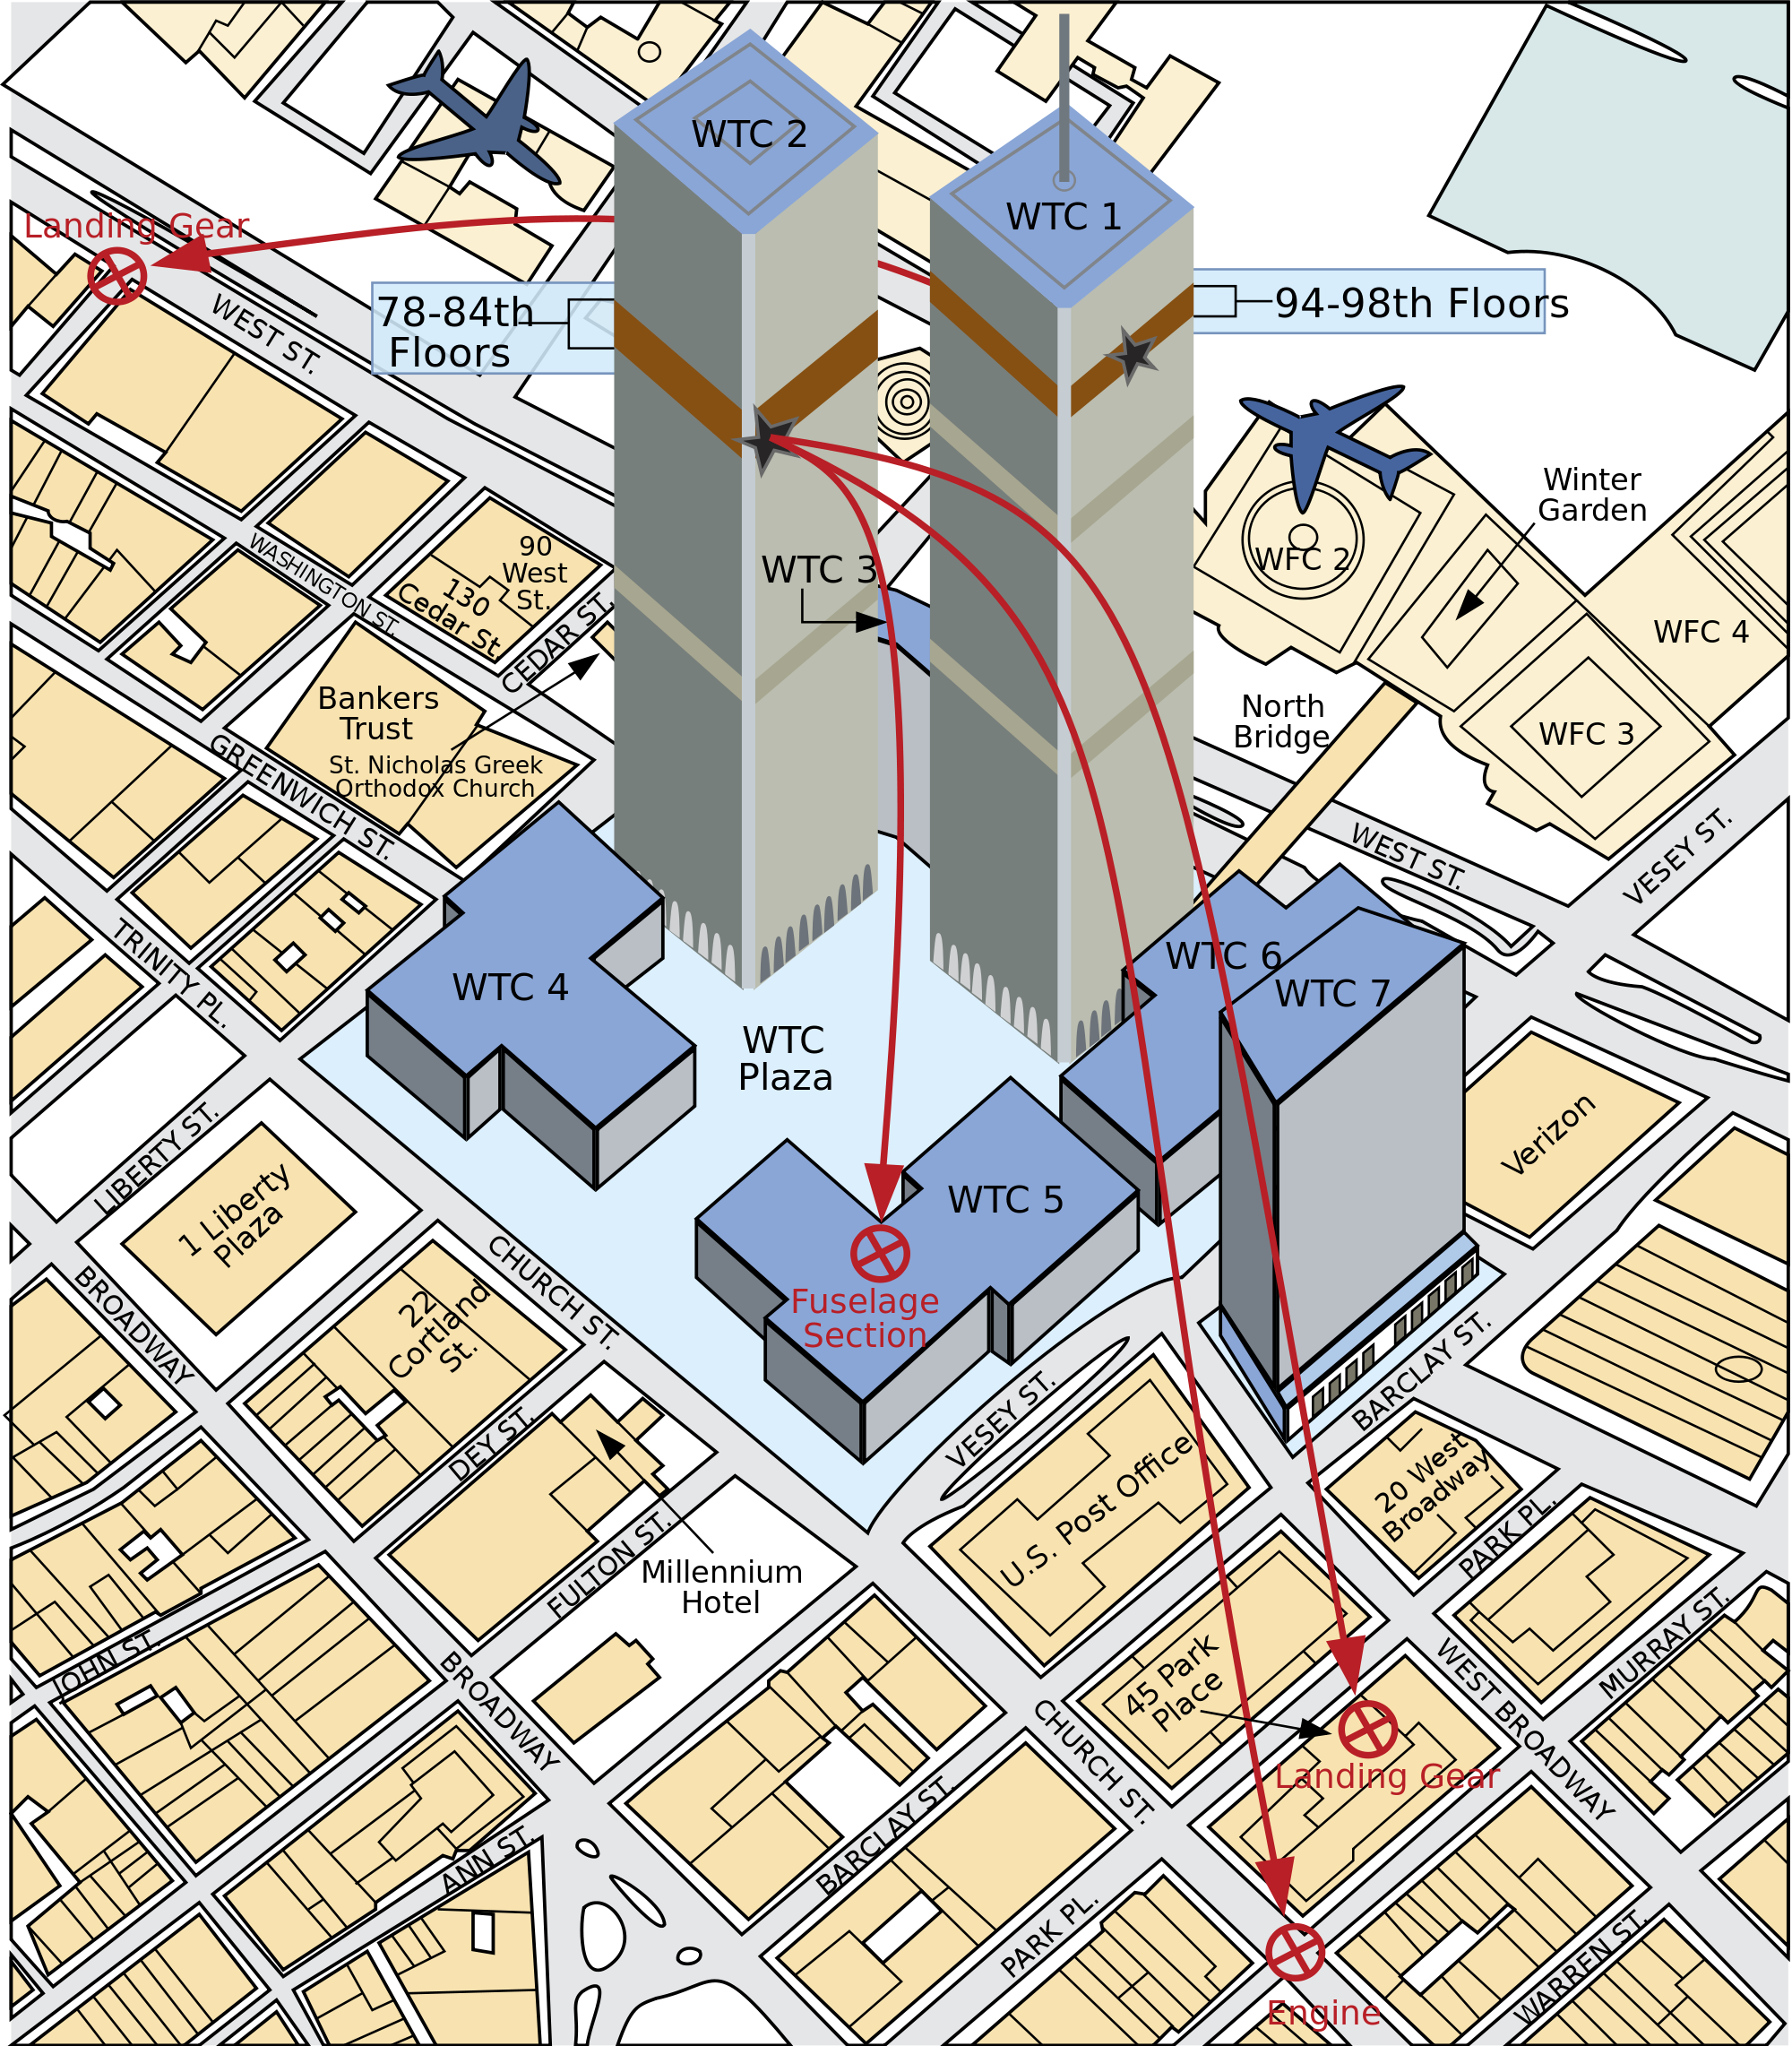 2000px-world_trade_center_ny_2001-09-11_debris_impact_areas_svg.png